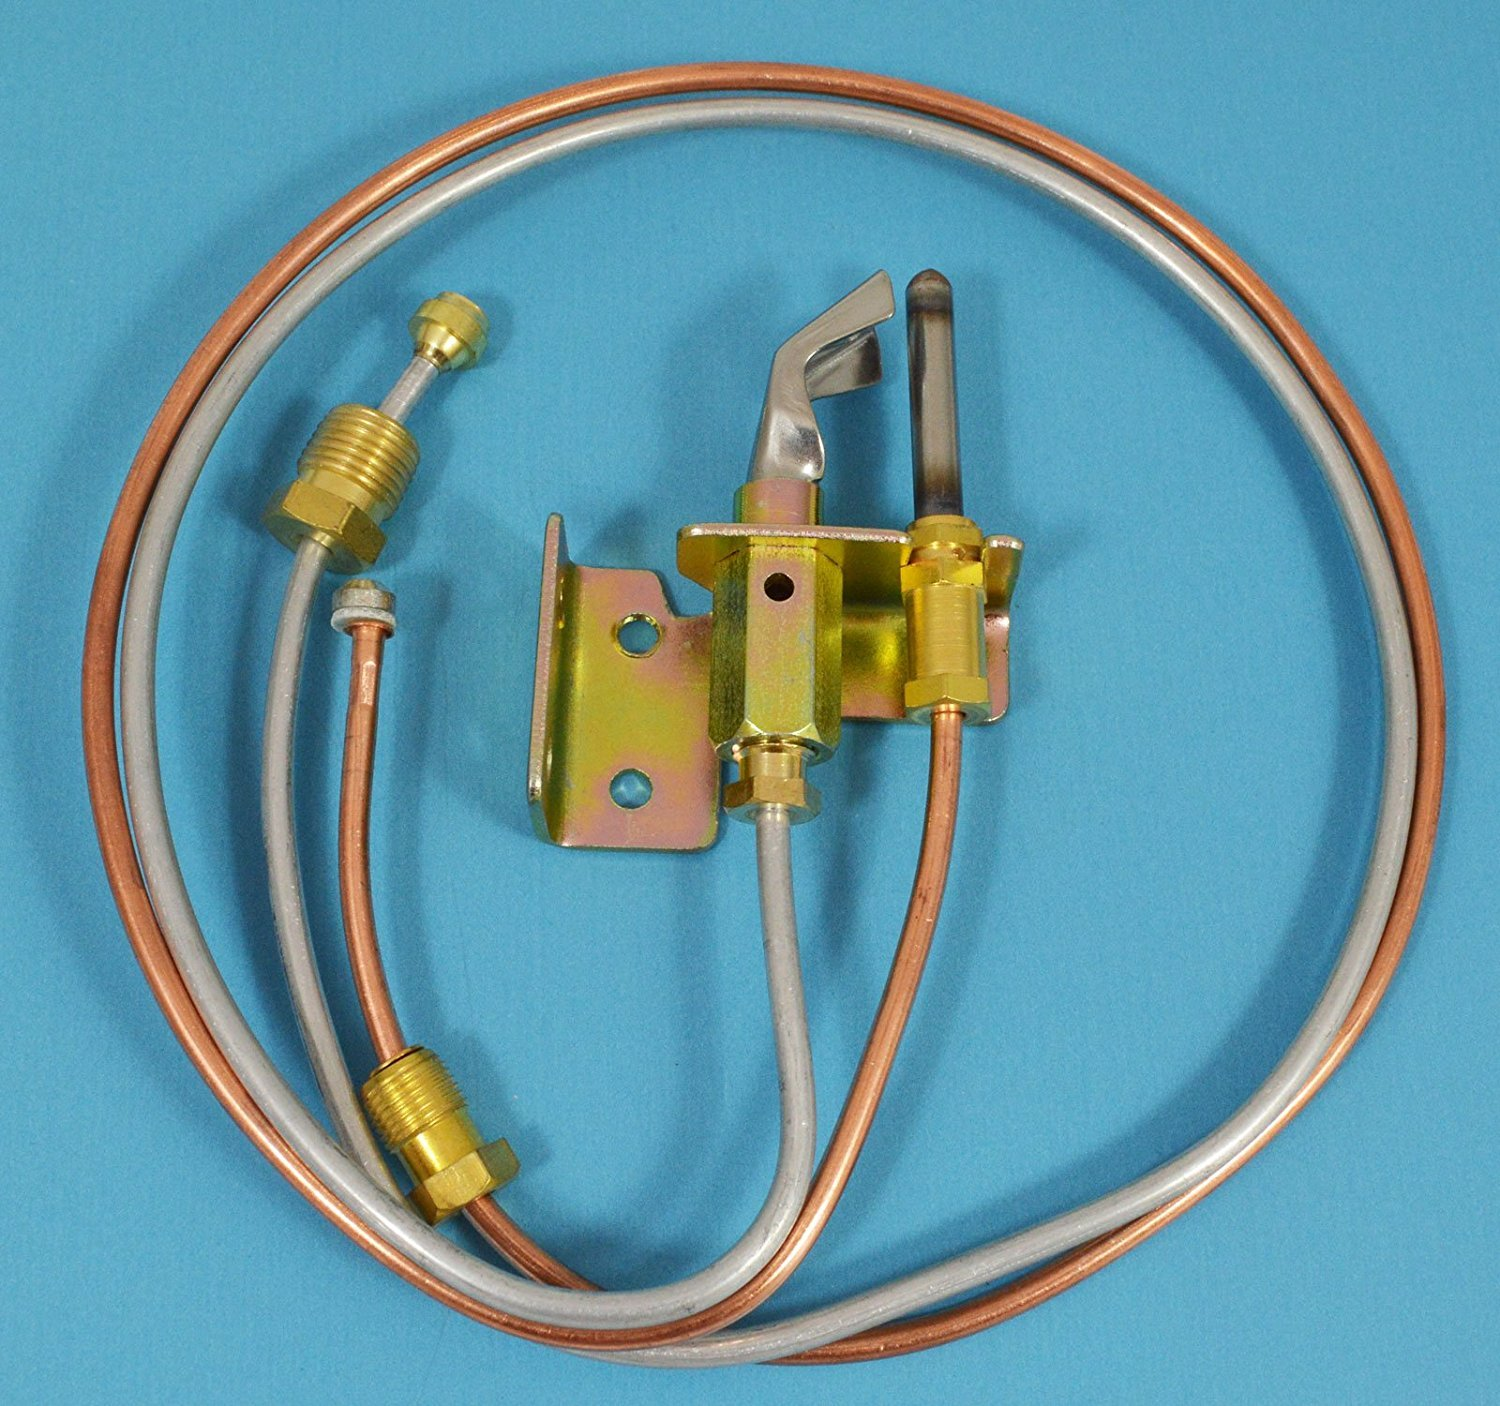 Water Heater Pilot Assembely Includes Pilot Thermocouple and Tubing ...